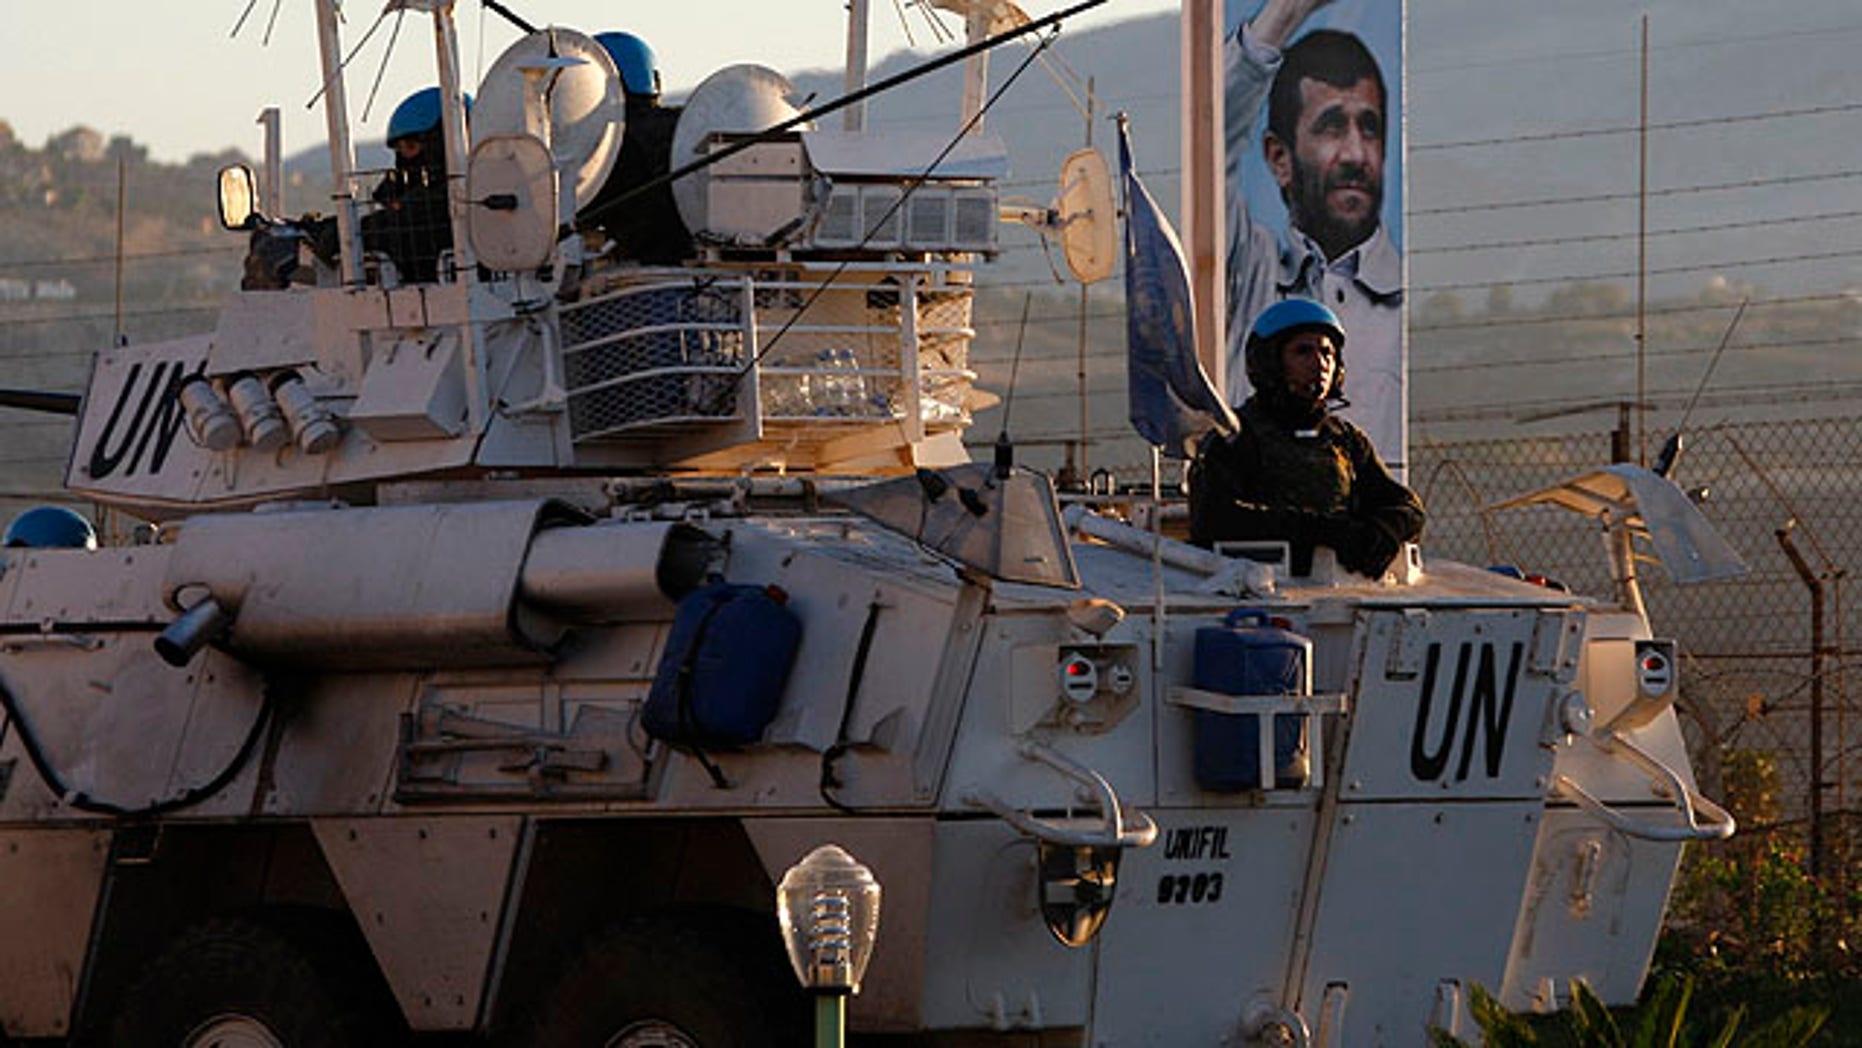 Oct. 12, 2010: U.N. peacekeepers patrol the border in front of an attached picture of Iranian President Mahmoud Ahmadinejad, a day ahead of his visit, in the southern border village of Kfar Kila, Lebanon.